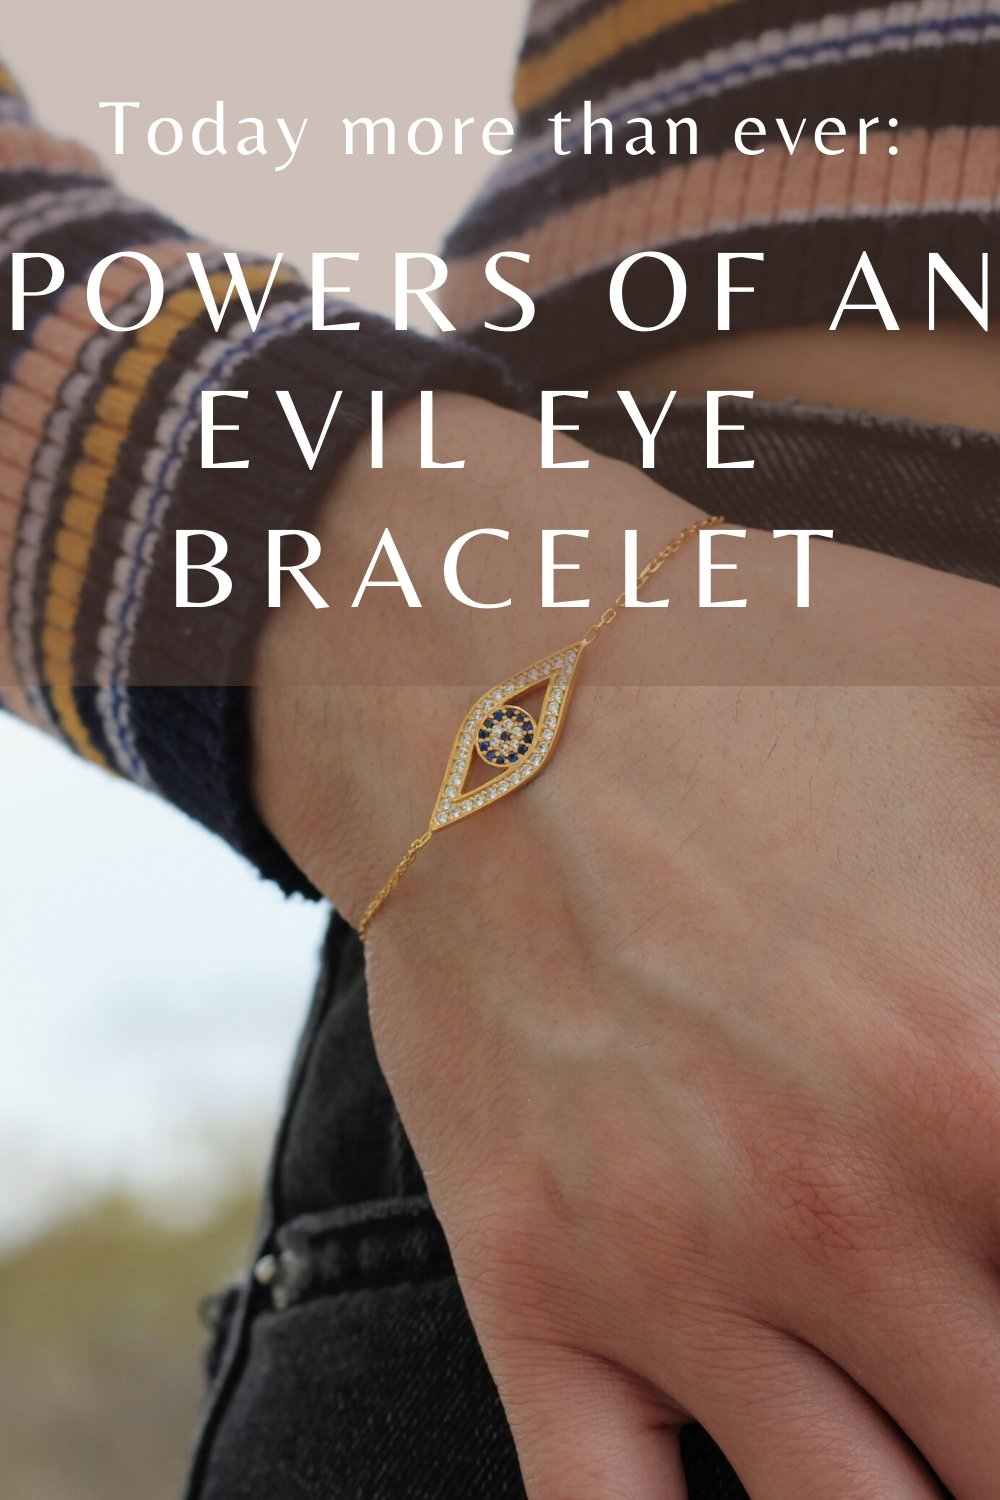 powers of an evil eye bracelet covid19